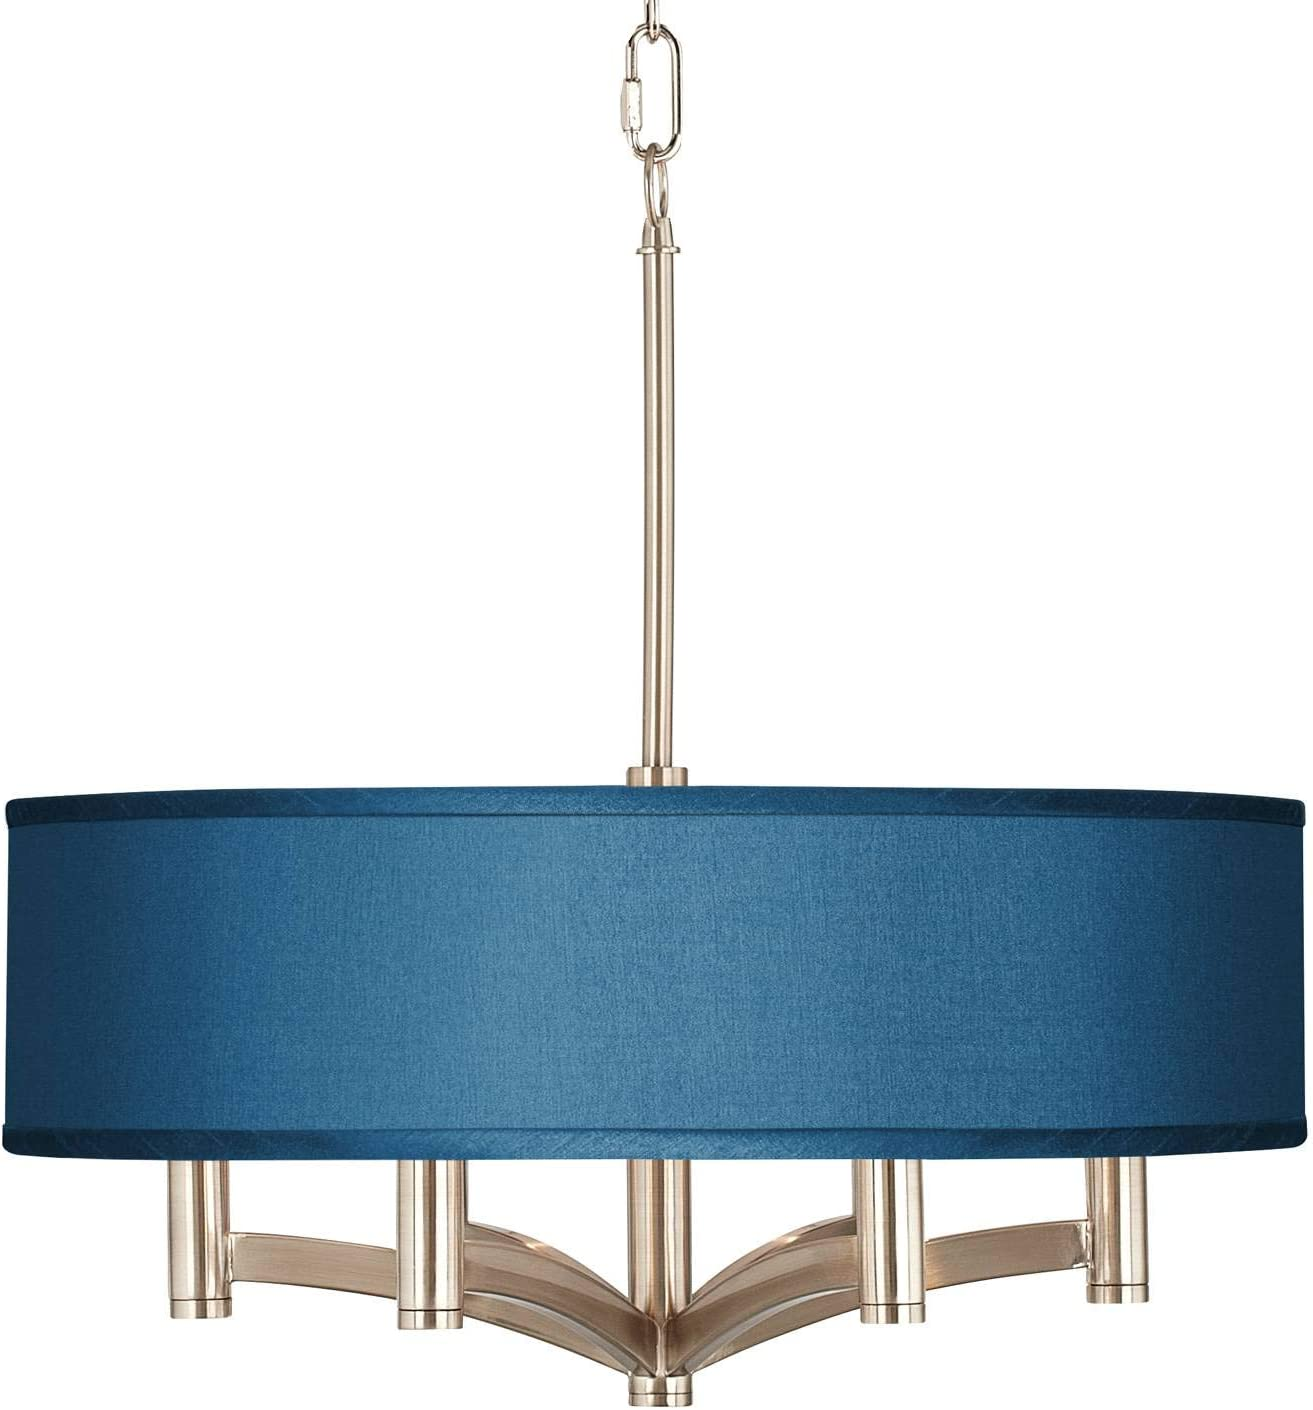 Lighting Ceiling Fans Ava Brushed Nickel Drum Pendant Chandelier 20 Wide Modern Blue Faux Silk Shade 6 Light Fixture For Dining Room House Foyer Kitchen Island Entryway Bedroom Living Room Possini Euro